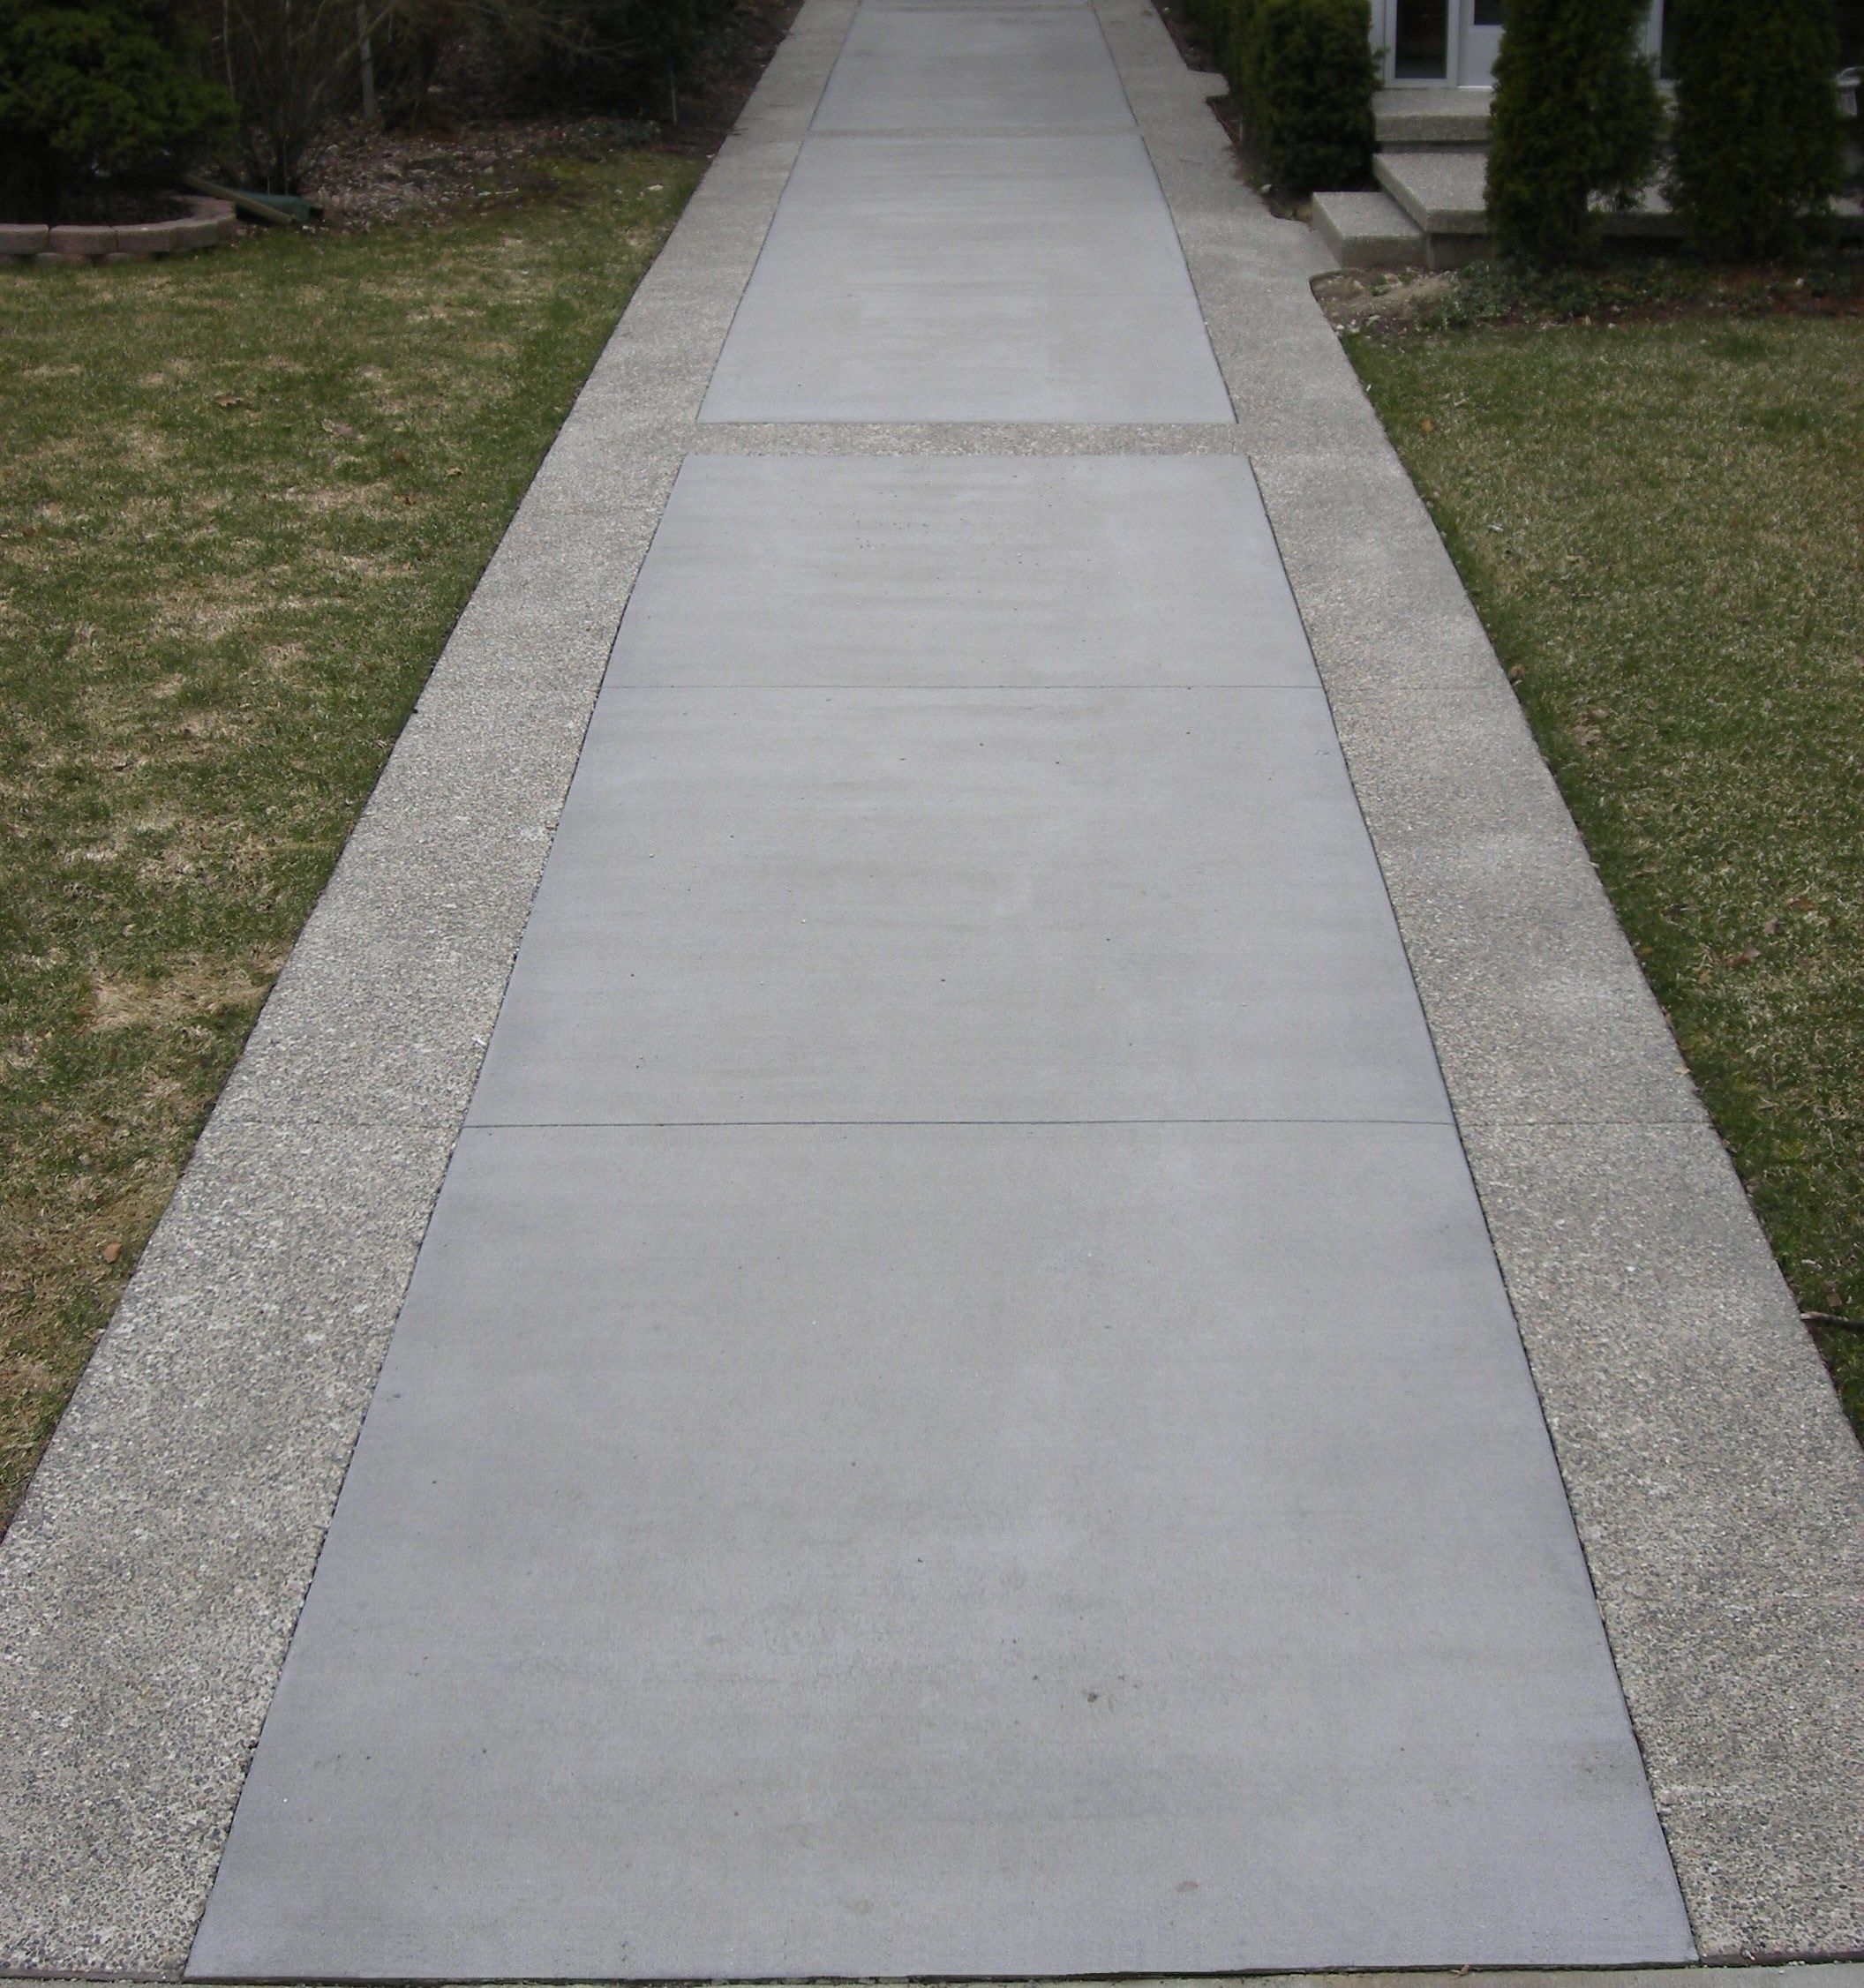 Sealing exposed aggregate pool deck - Standard Broomed Driveway With Exposed Aggregate Border Similar Idea Width Will Be Doubled